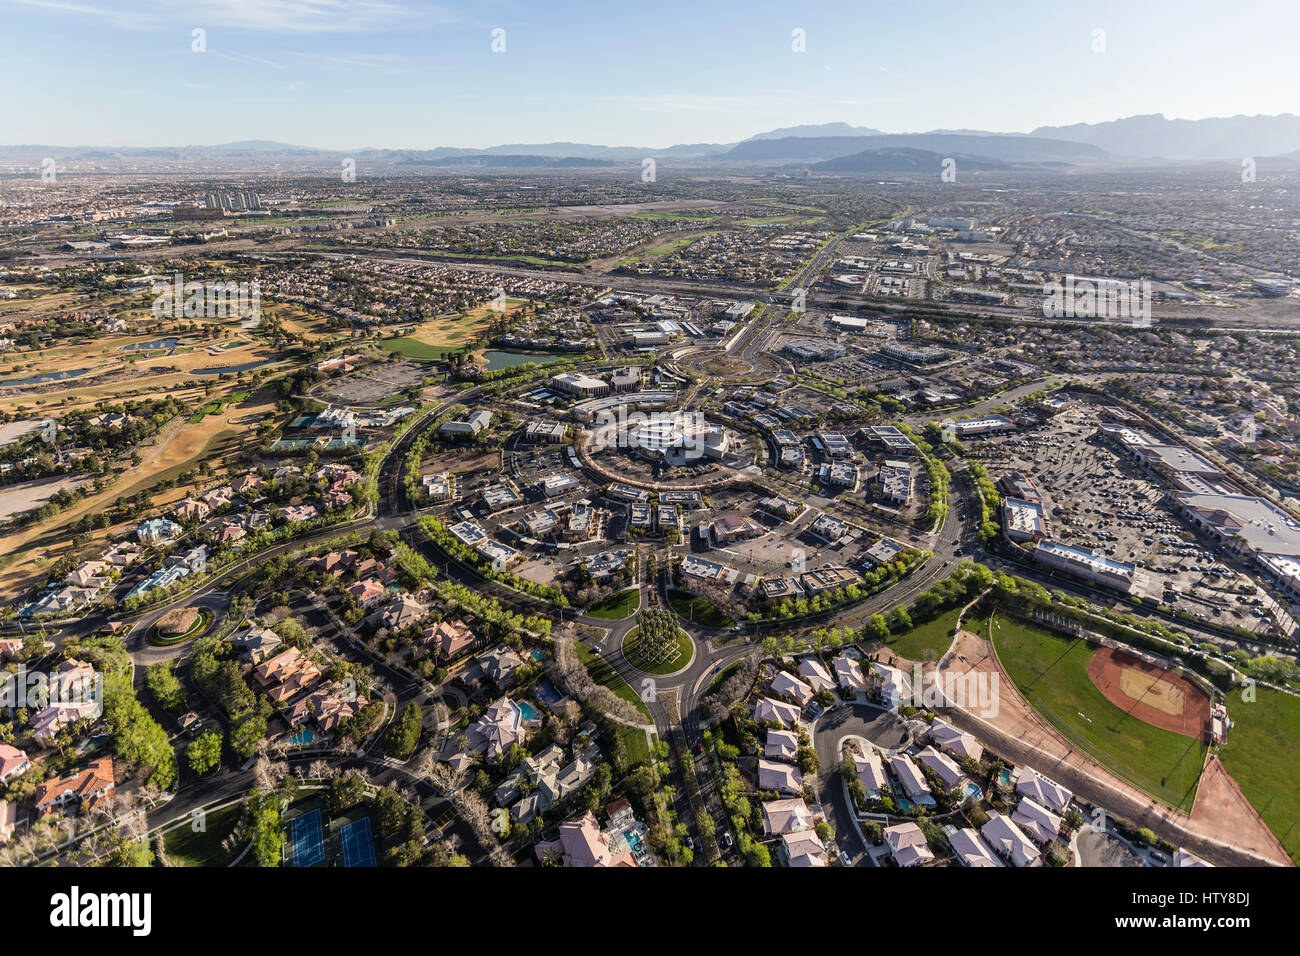 Aerial View Of The Summerlin Neighborhood In Las Vegas